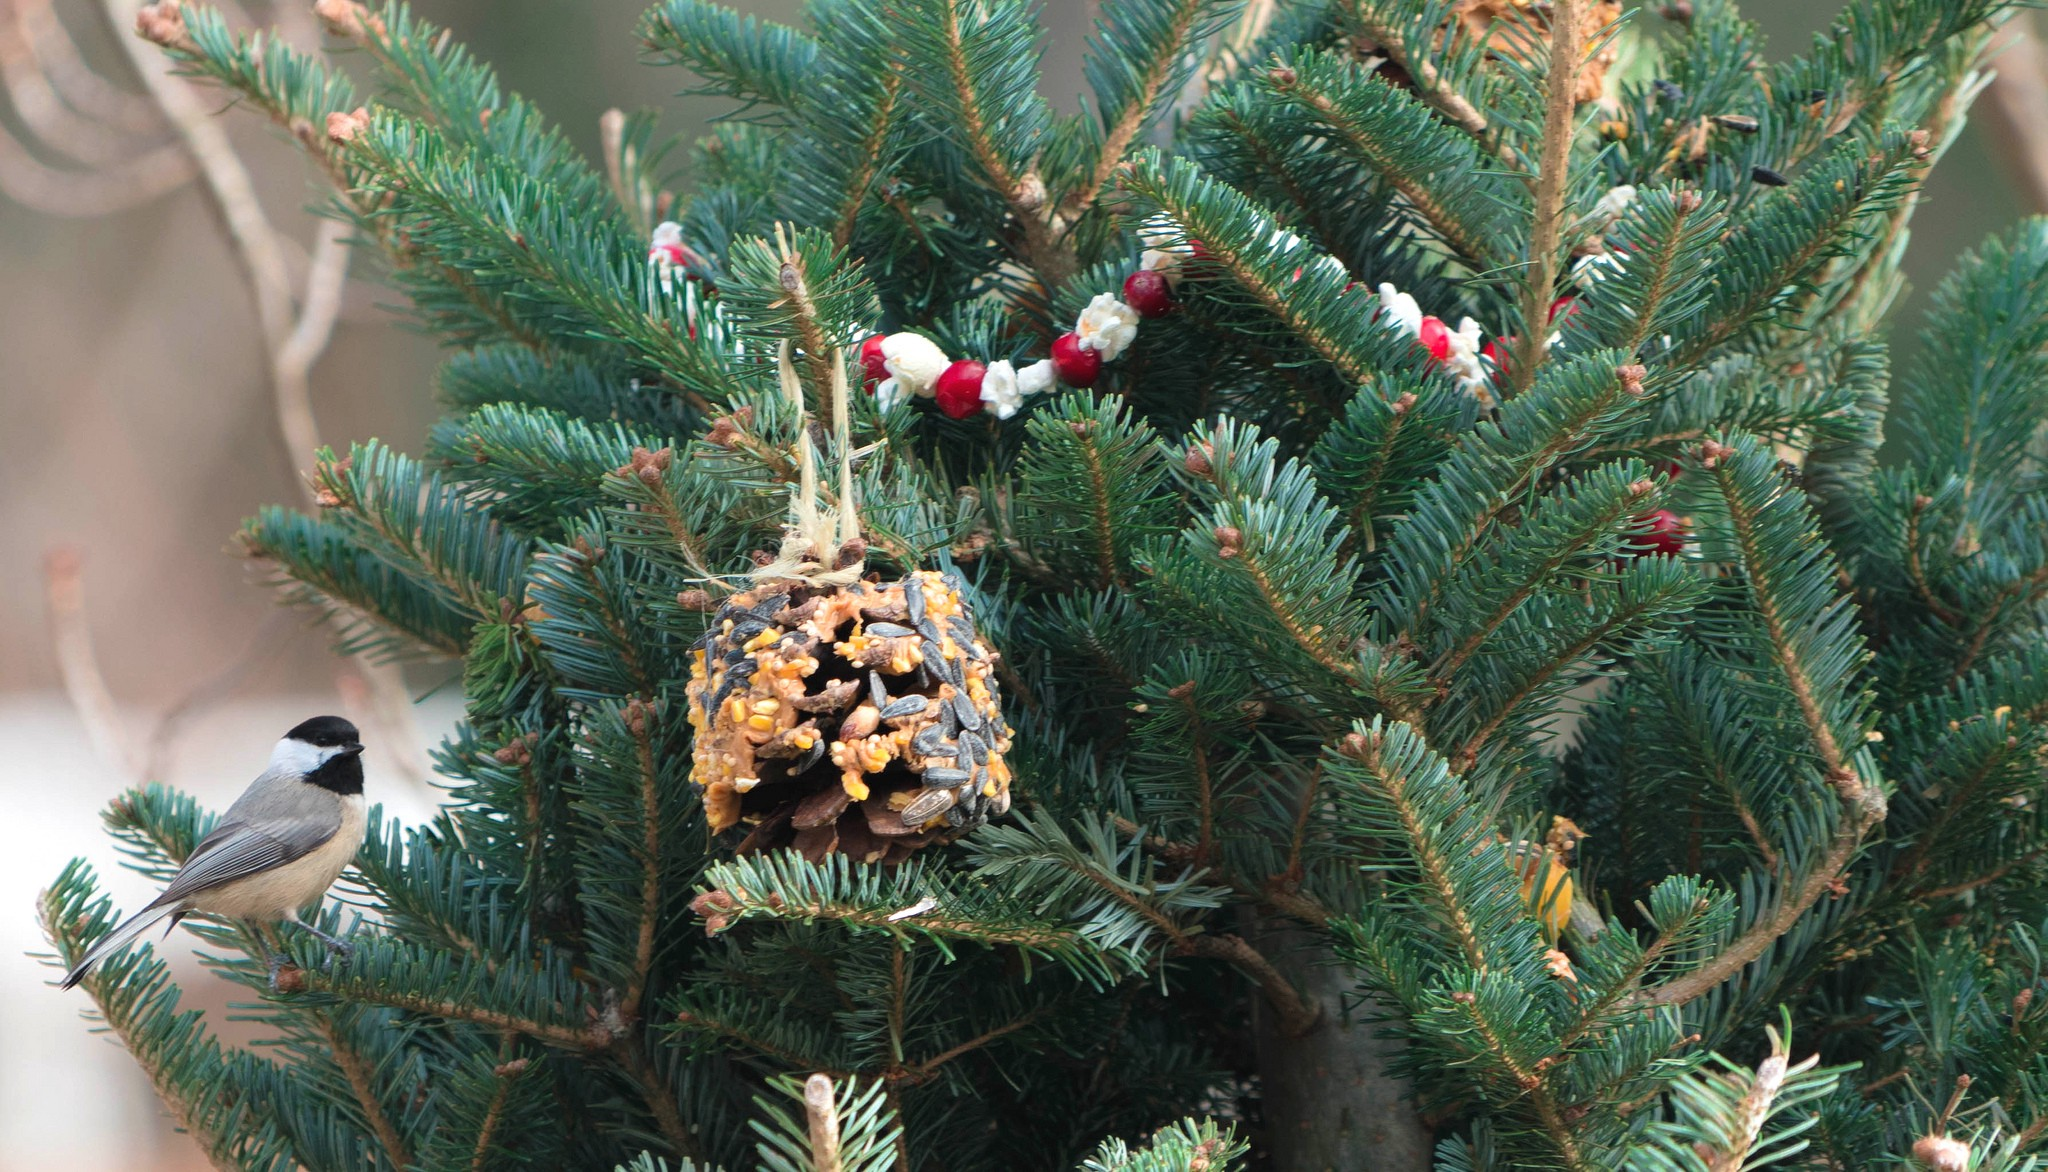 Christmas Trees Images.Recycling Christmas Trees For Wildlife Updates From The